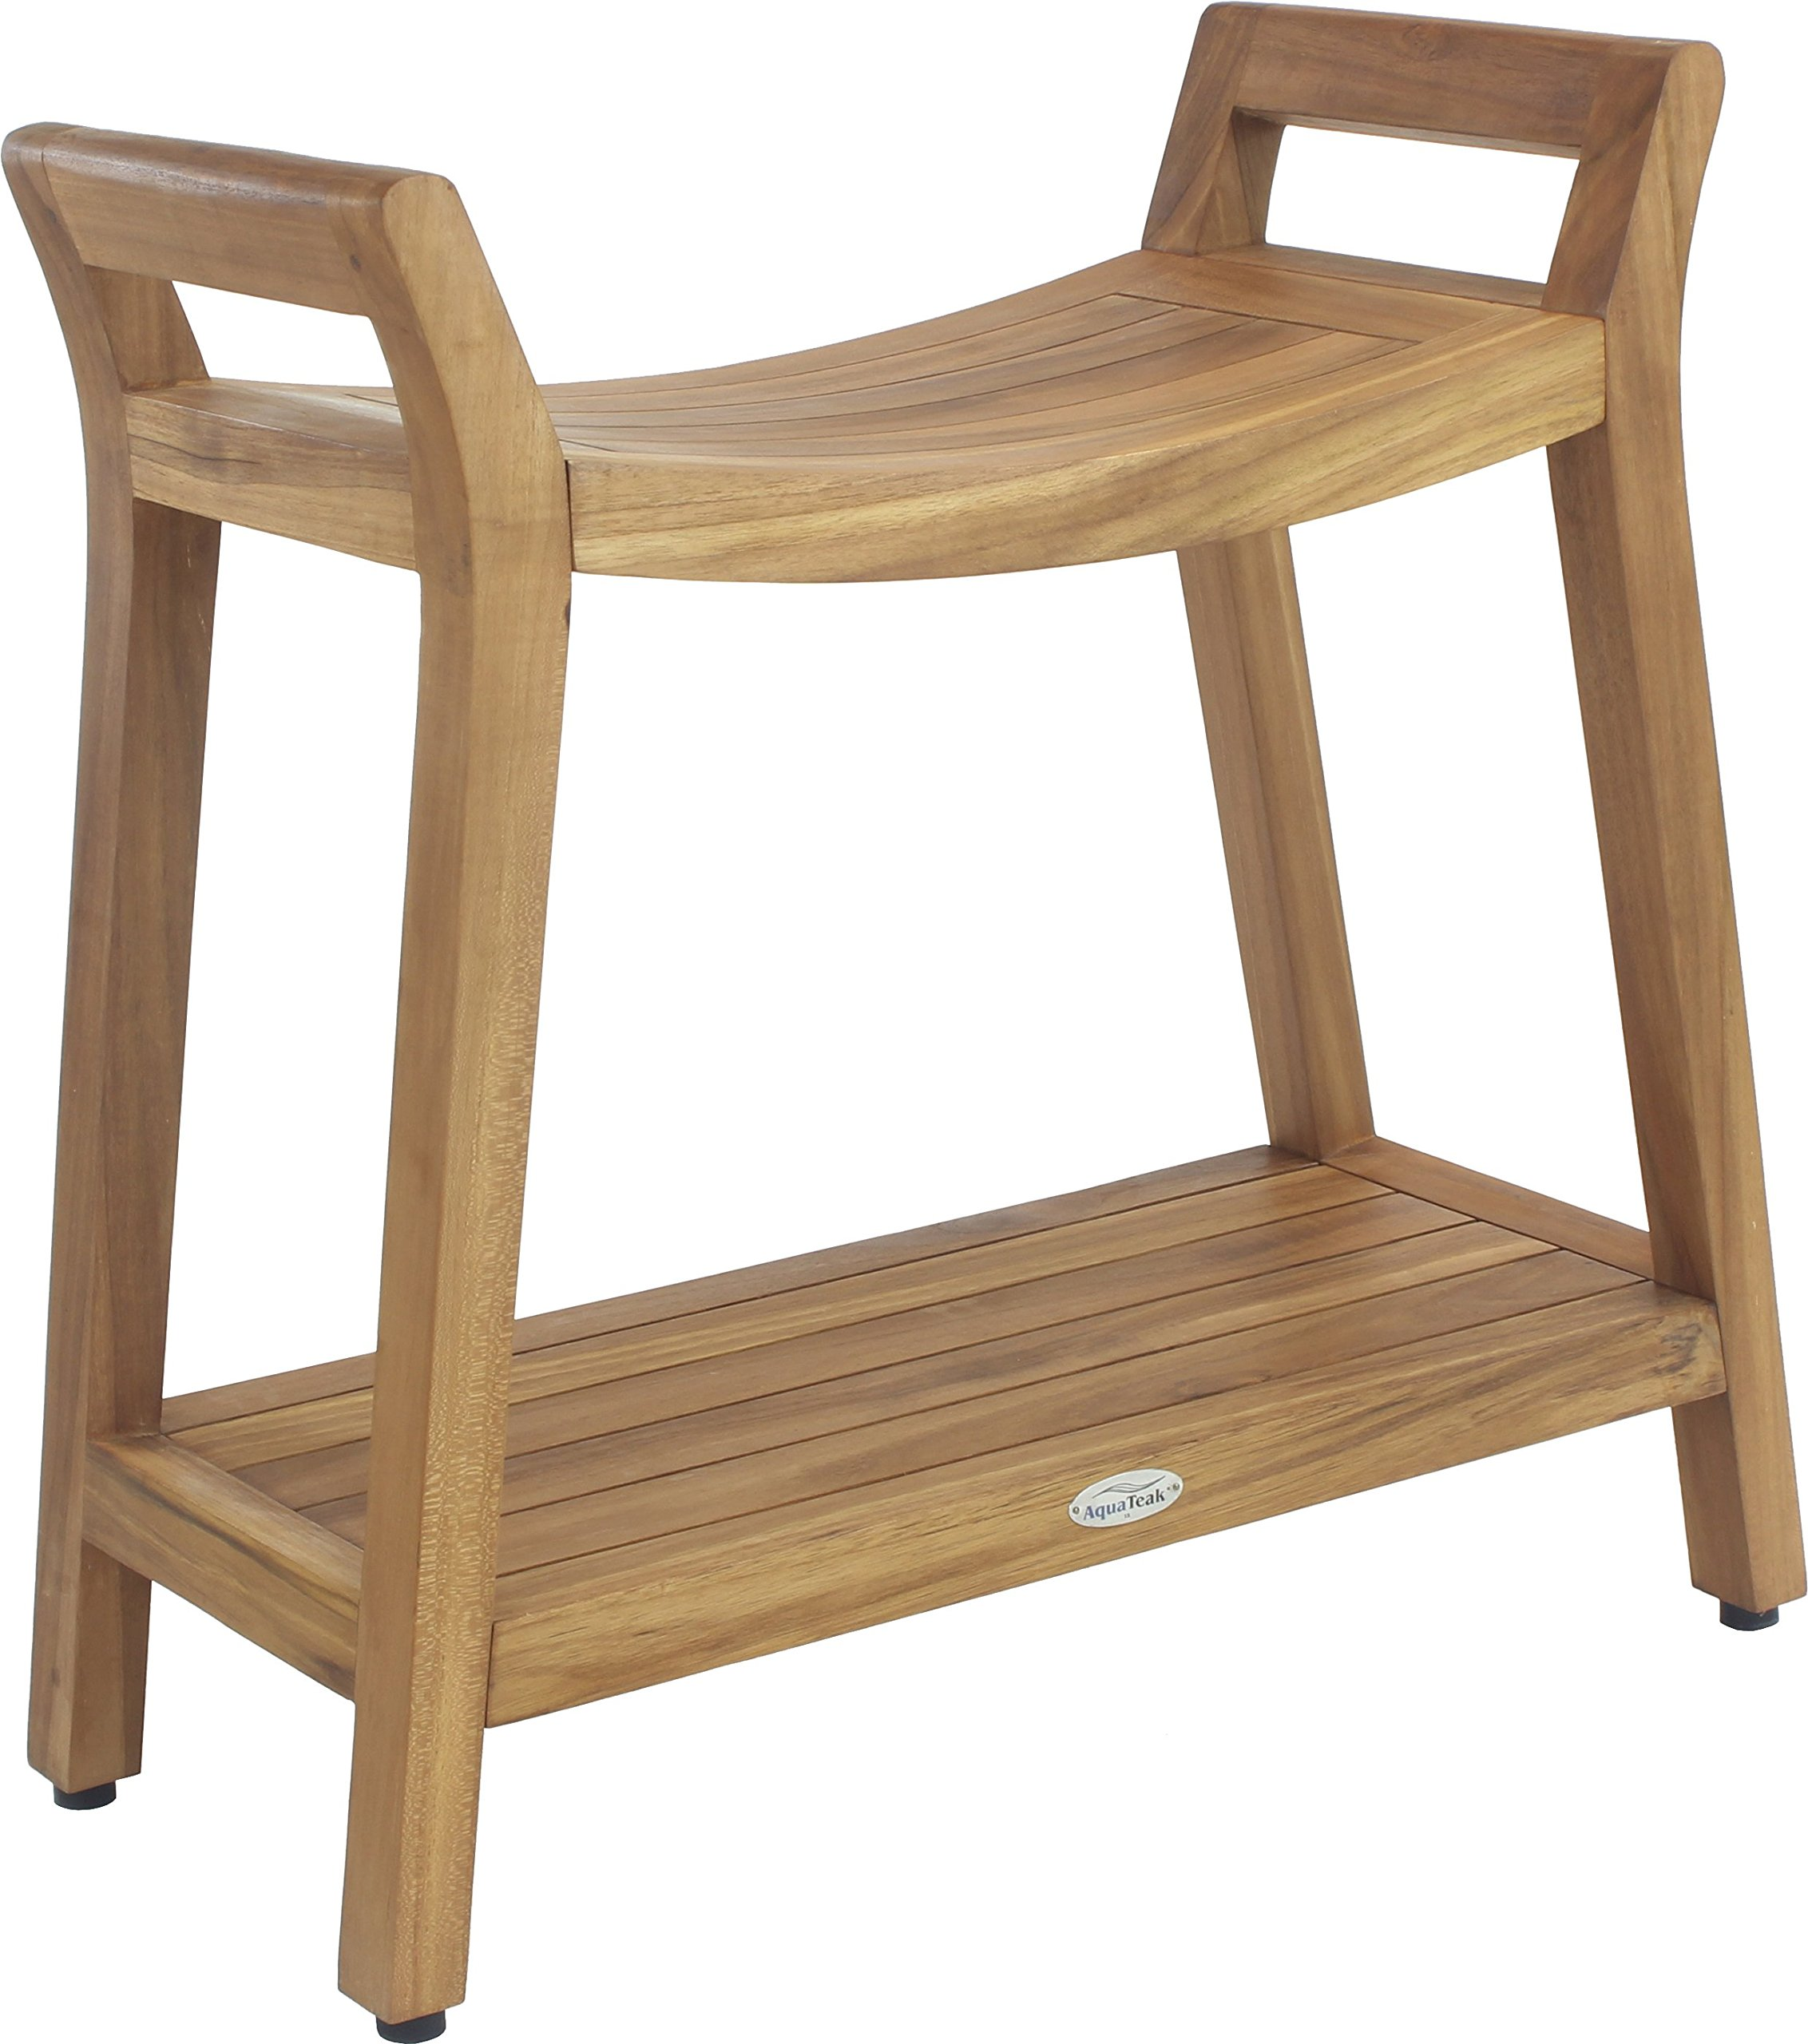 Asia Ascend Teak Shower Bench with Elevated Height and Shelf